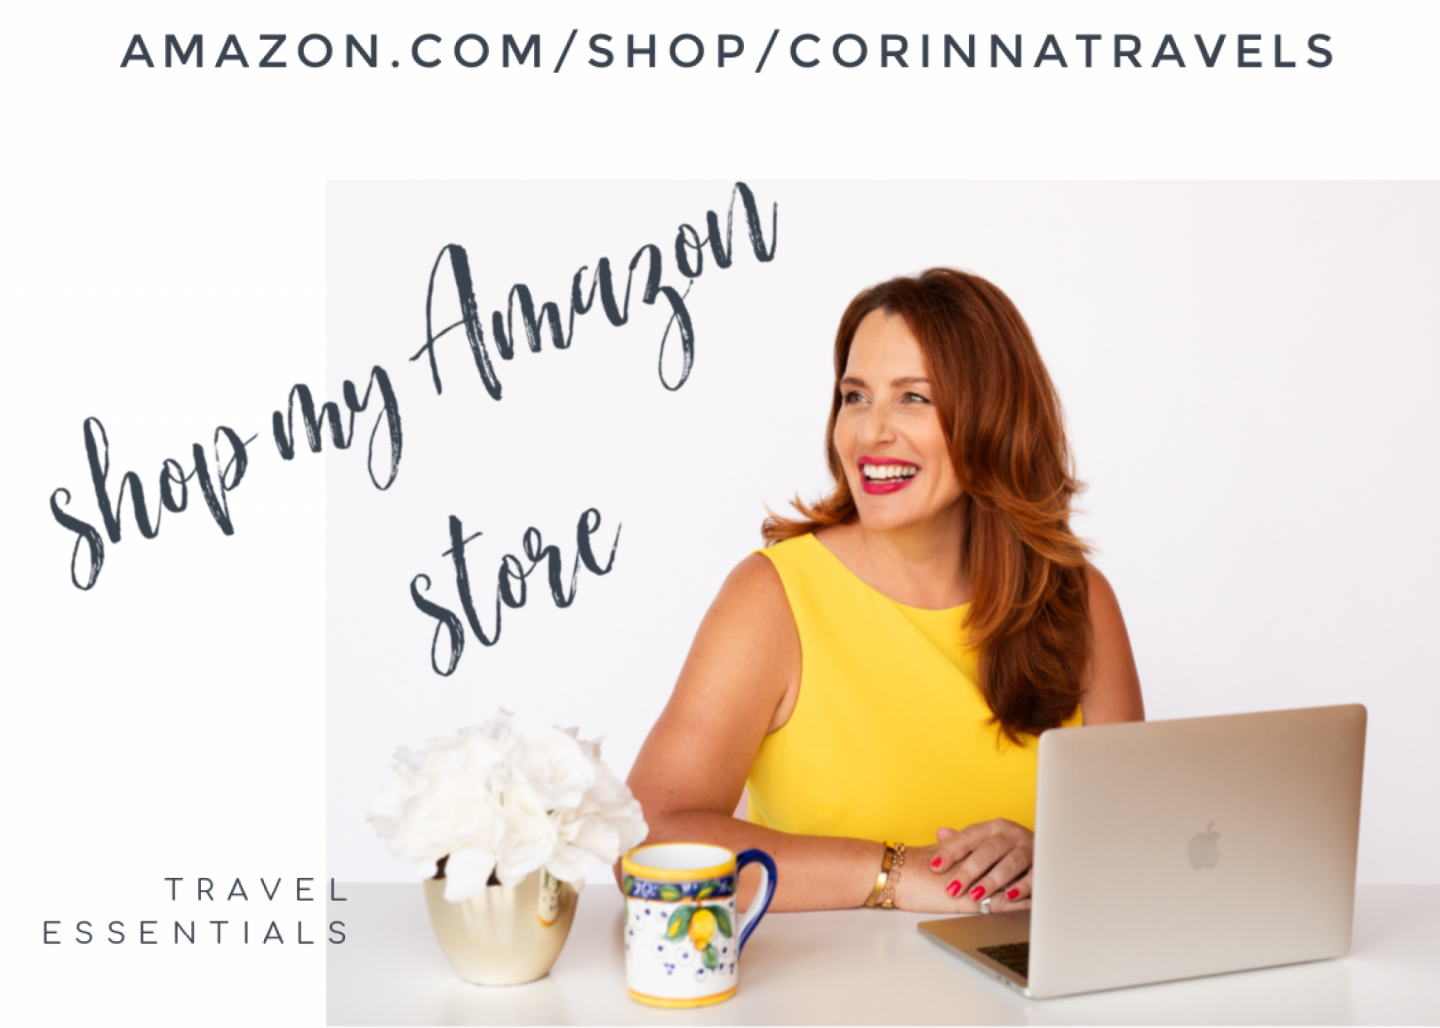 Amazon Influencer Store Corinna Travels